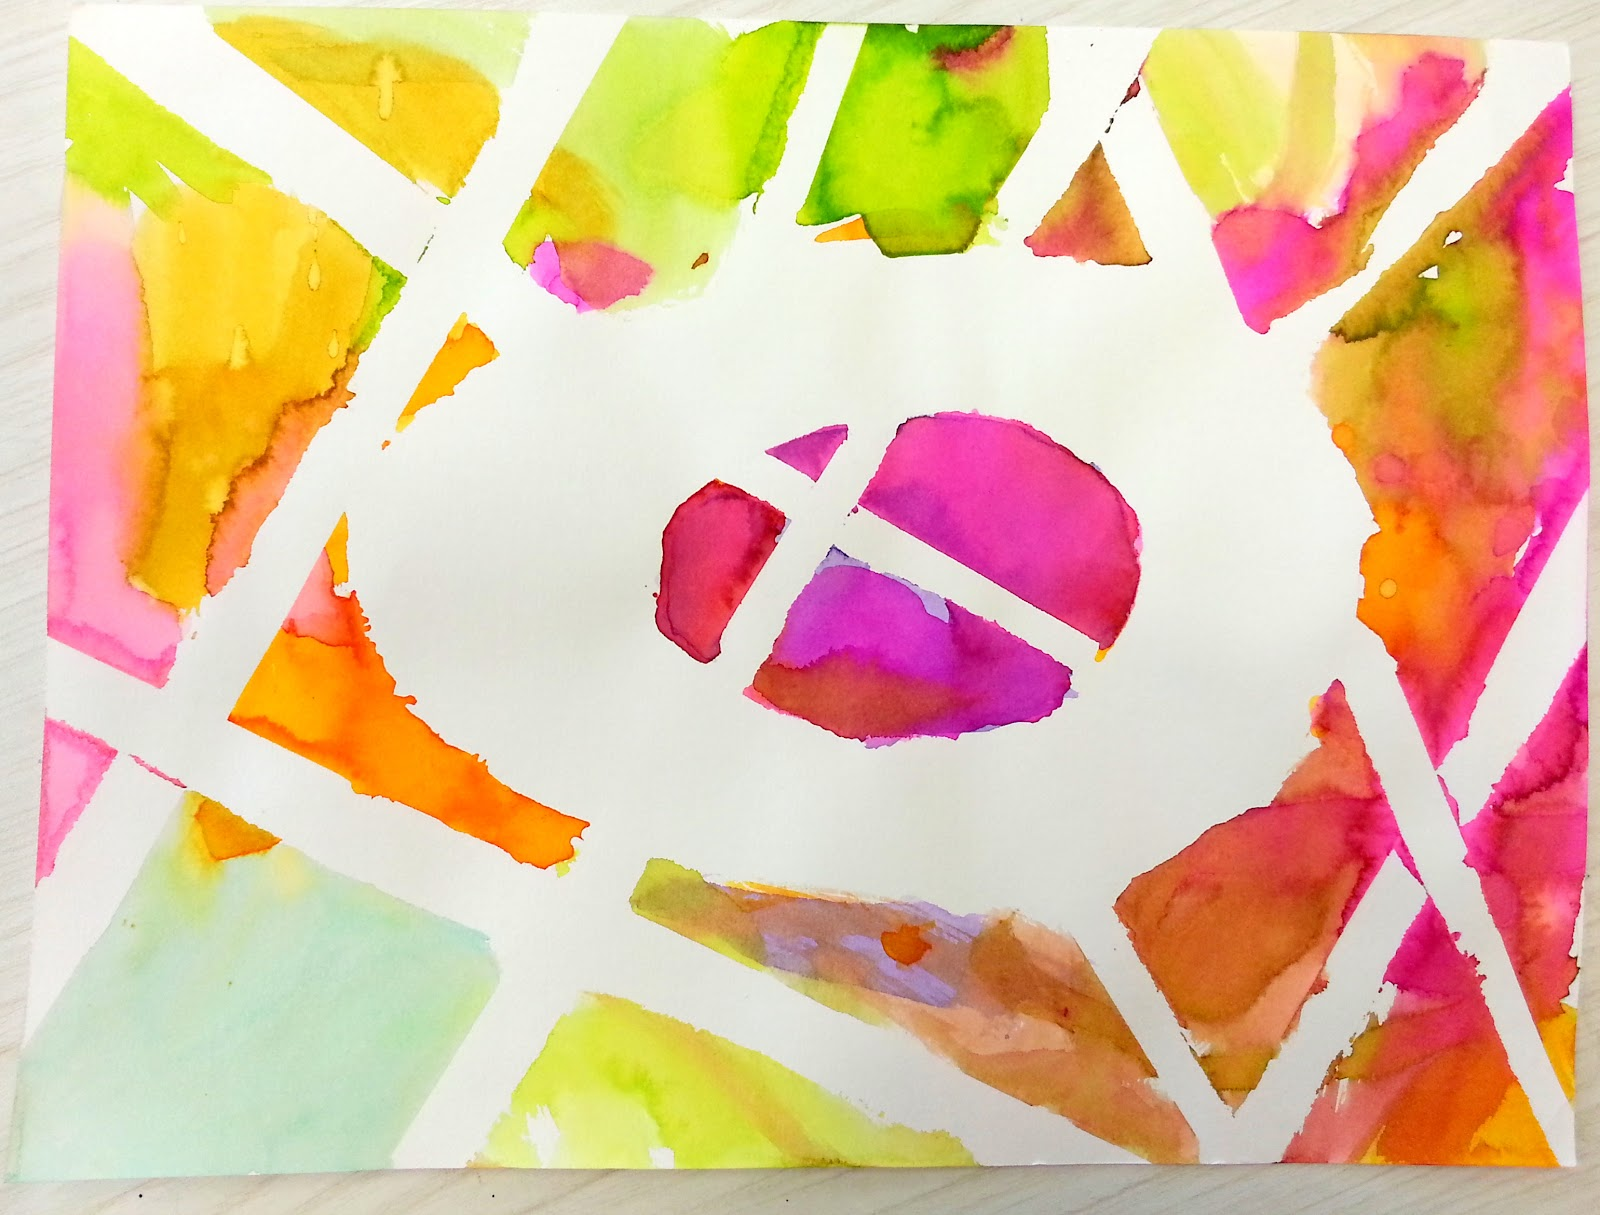 Choices For Children Watercolor Egg Art